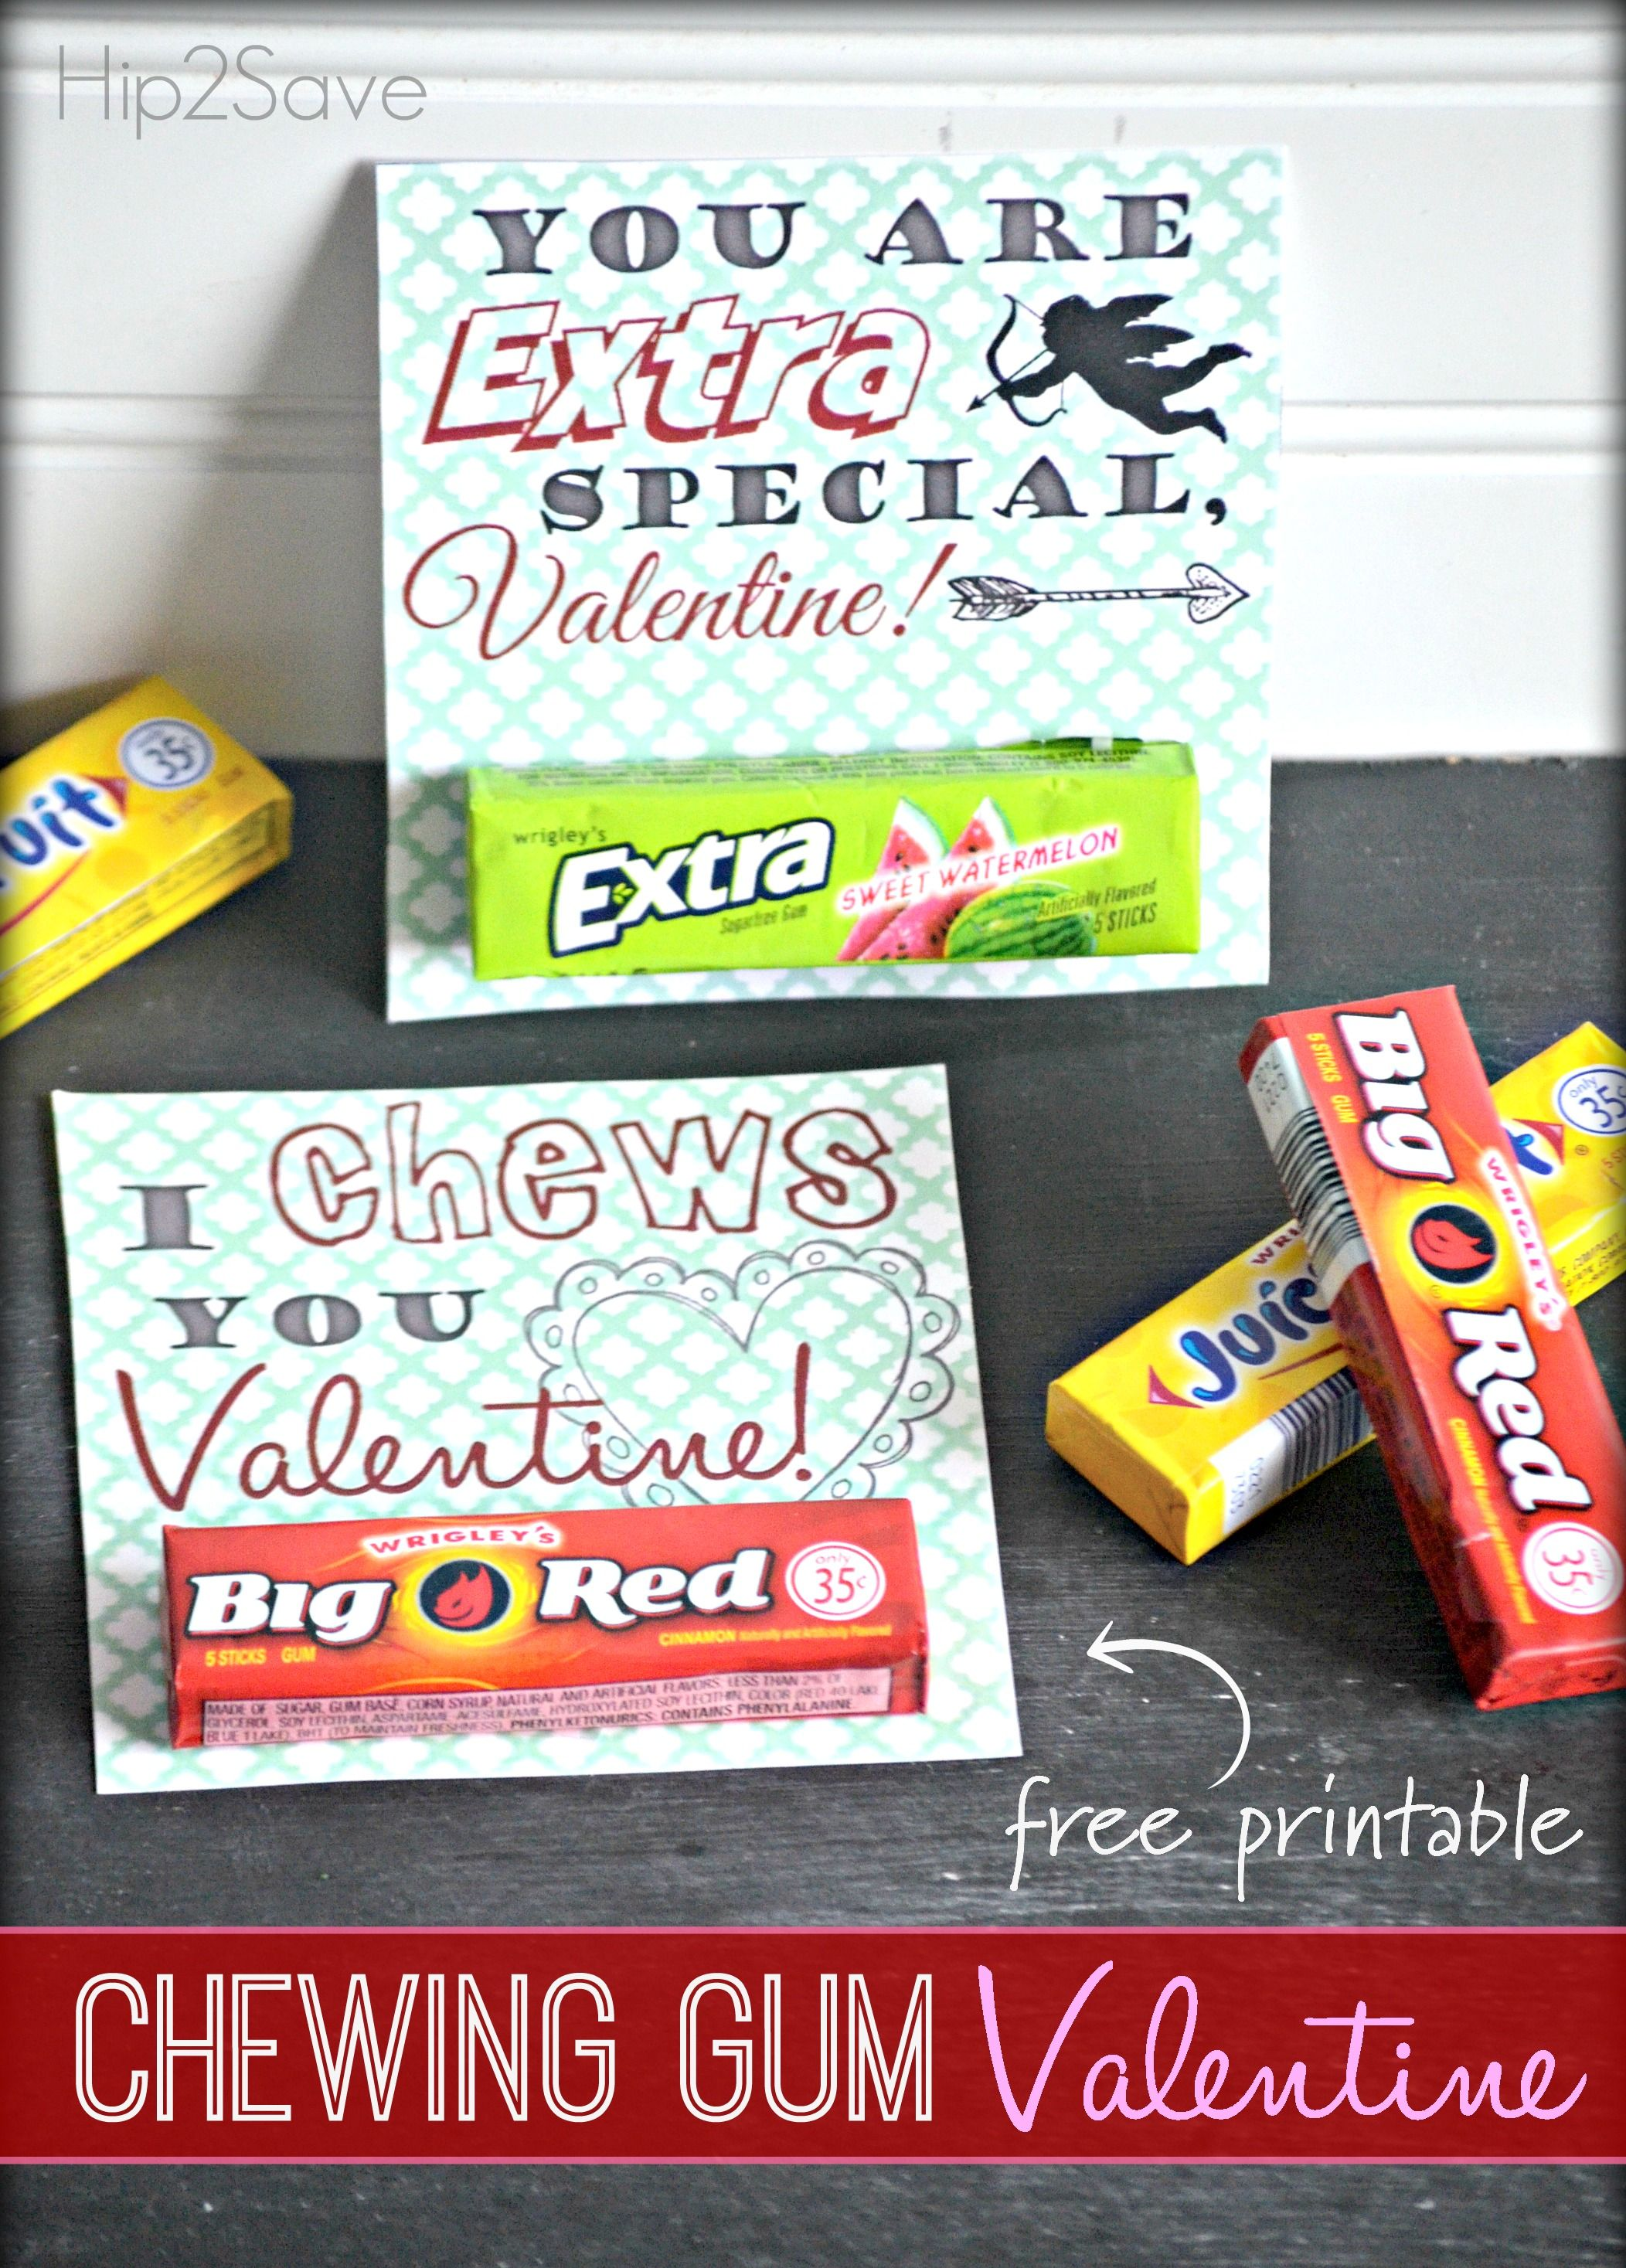 photo regarding Extra Gum Valentine Printable named Chewing Gum Valentines Working day Playing cards (Absolutely free Printables) All